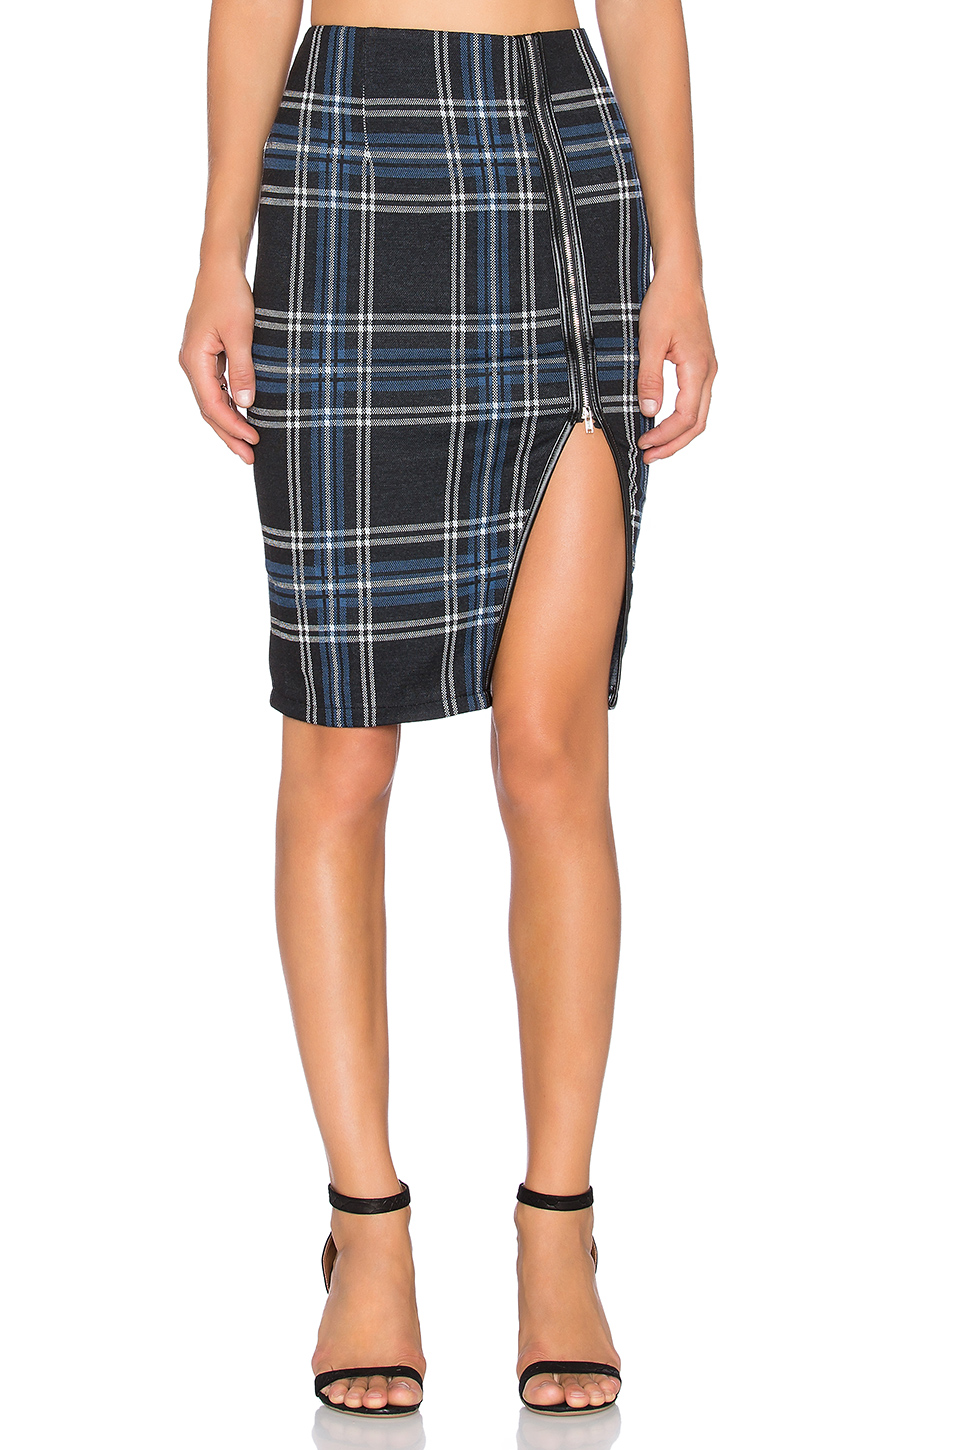 Bishop & Young Pencil Skirt, $70